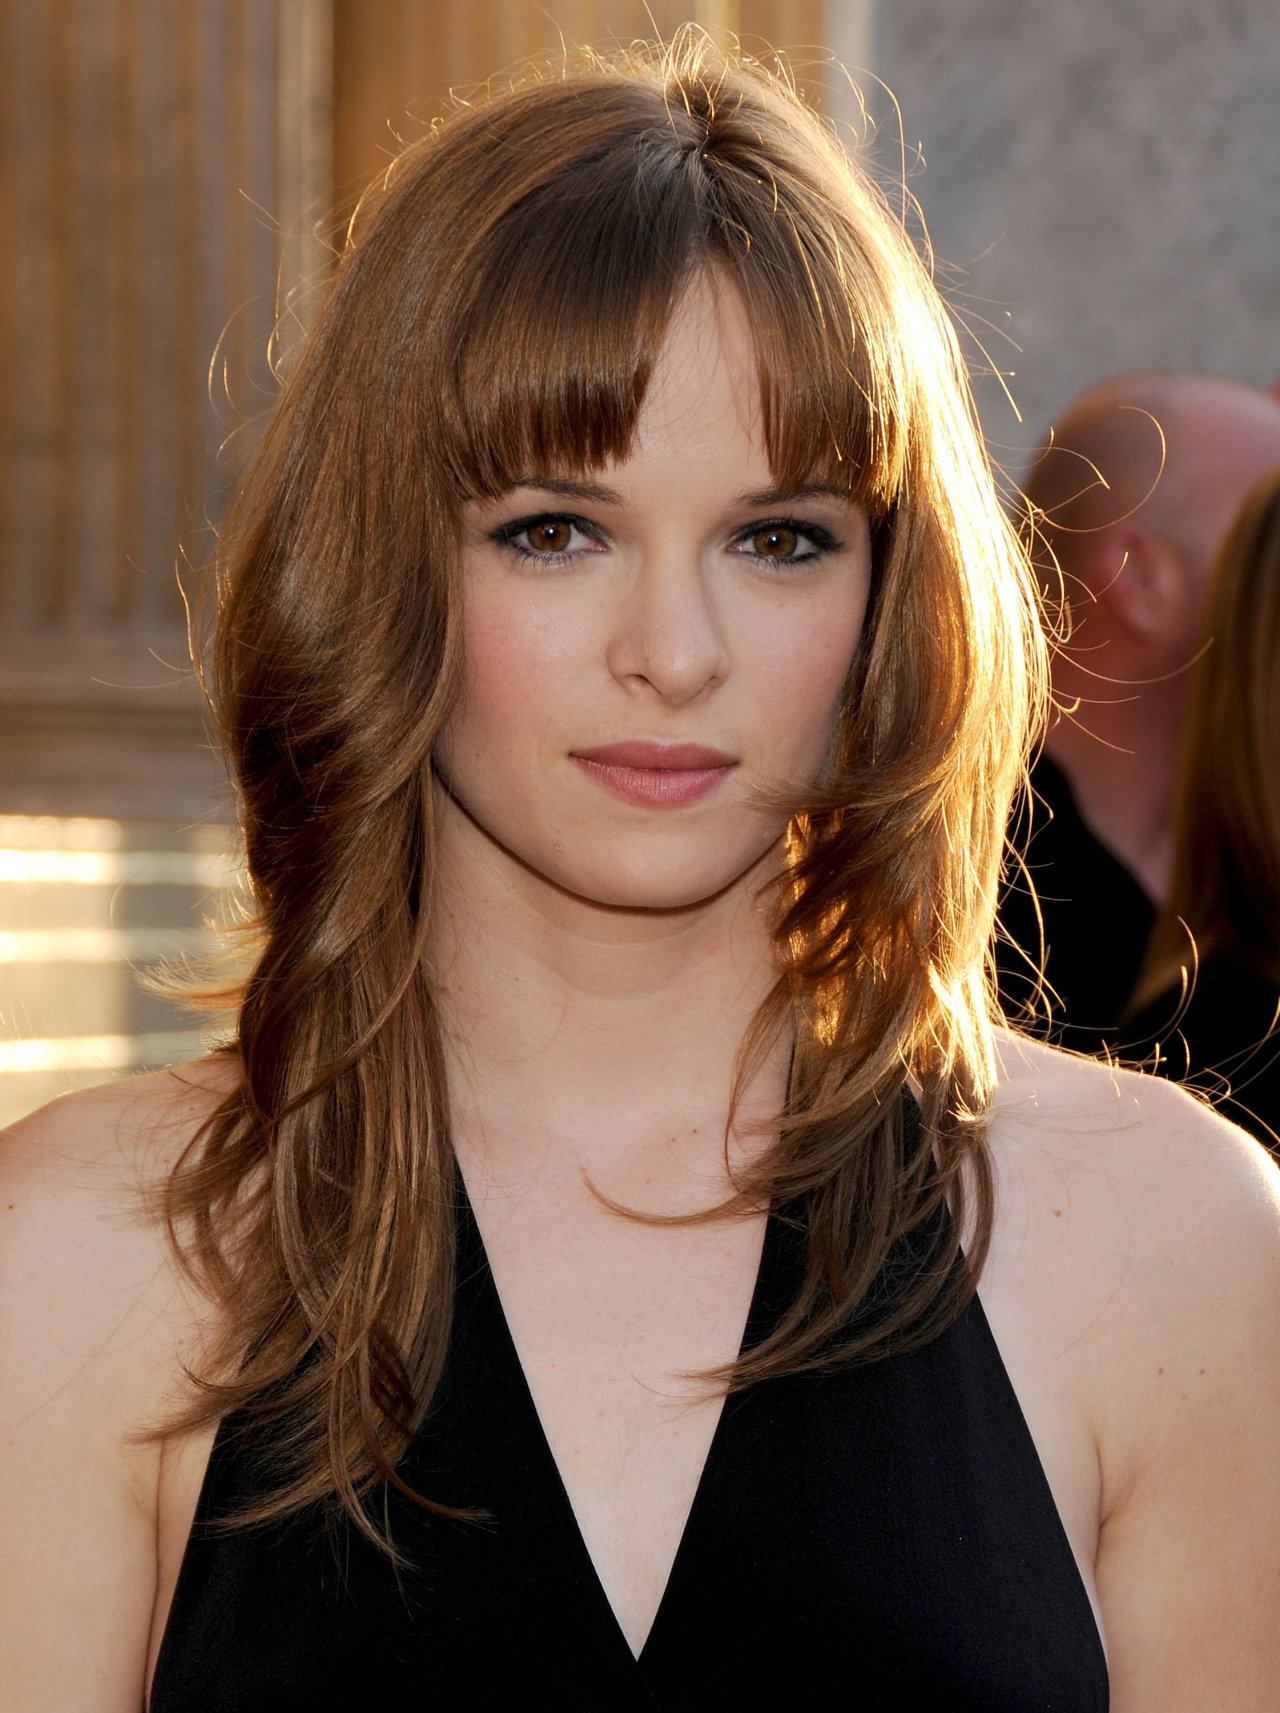 Images of Danielle Panabaker Wallpapers Free - #SC